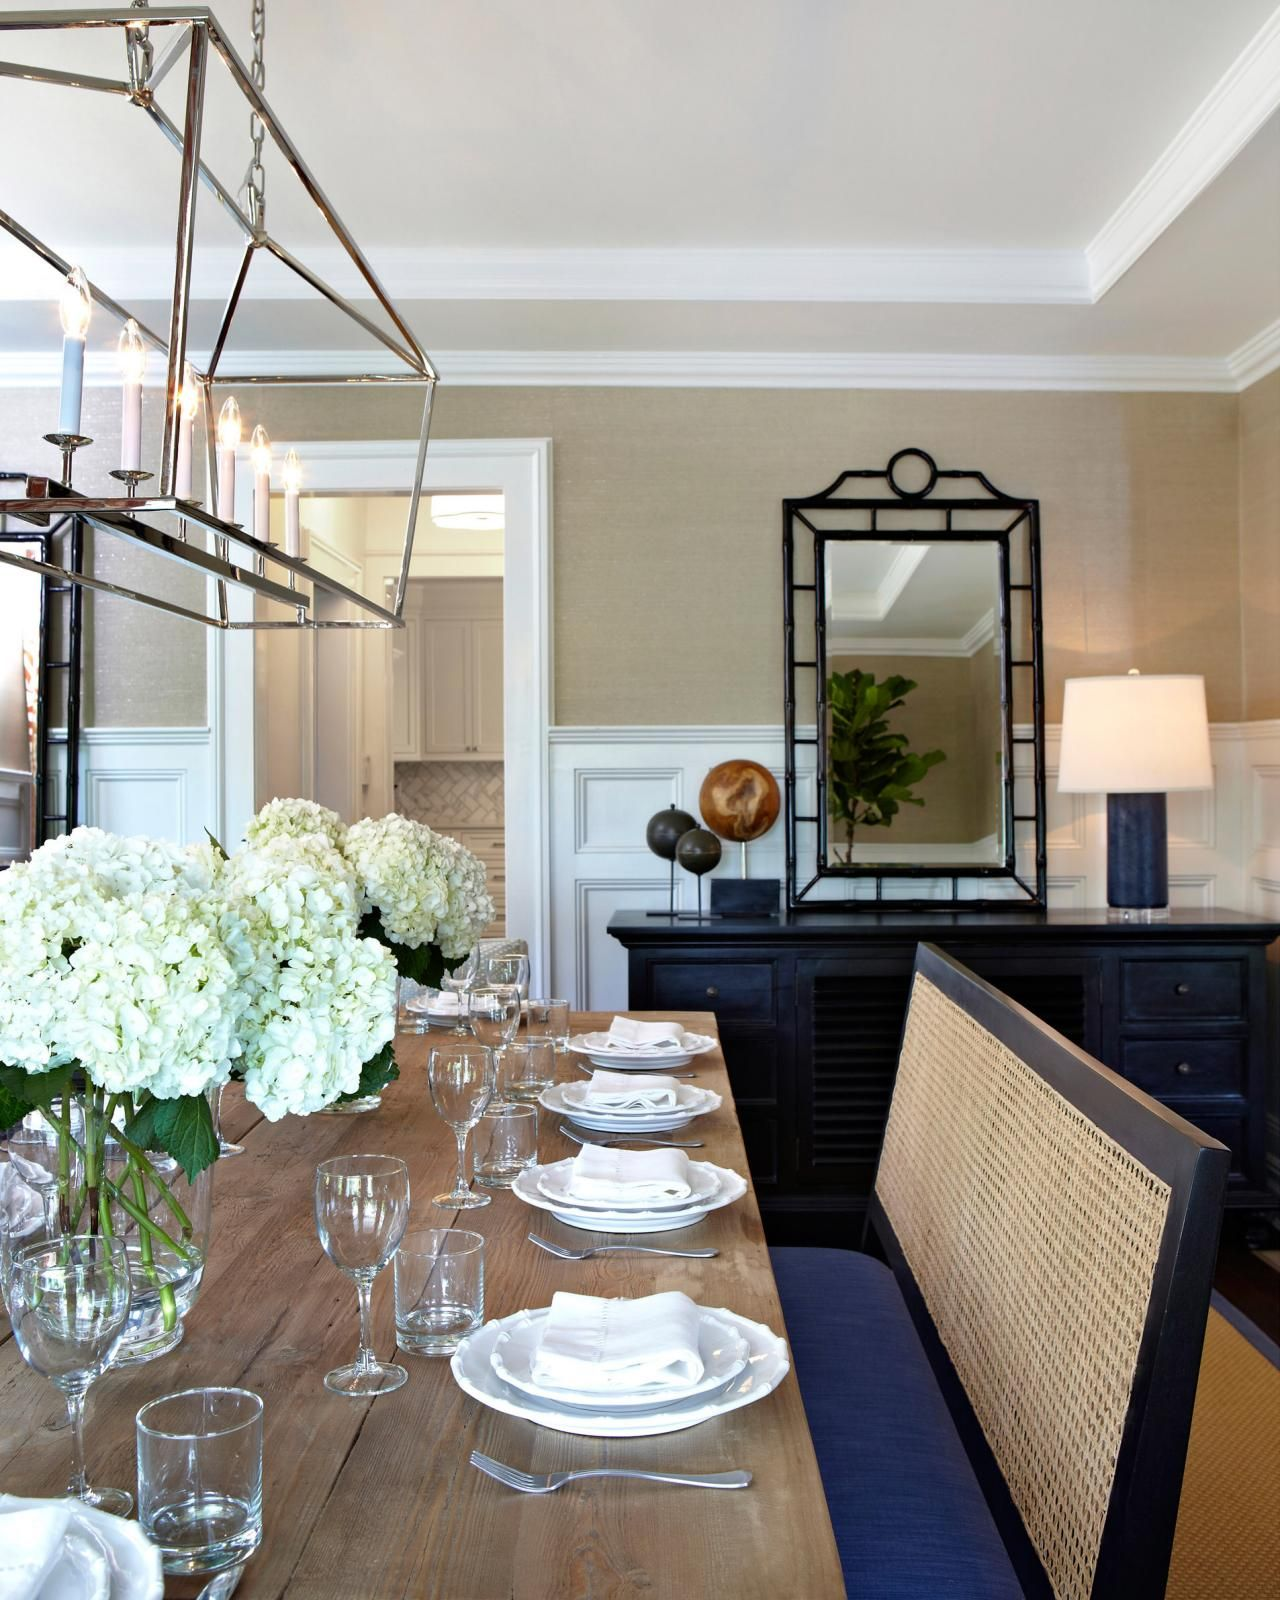 A hand-carved solid birch mirror in a black finish hangs above an ebony hand-rubbed buffet table, drawing the eye up to visually heighten this neutral dining room. A modern polished nickel chandelier illuminates the crisp, clean table settings in the neutral space. White dinnerware complements the white wainscoting and tray ceiling, while clear glass vases hold fresh hydrangea bloom centerpieces.